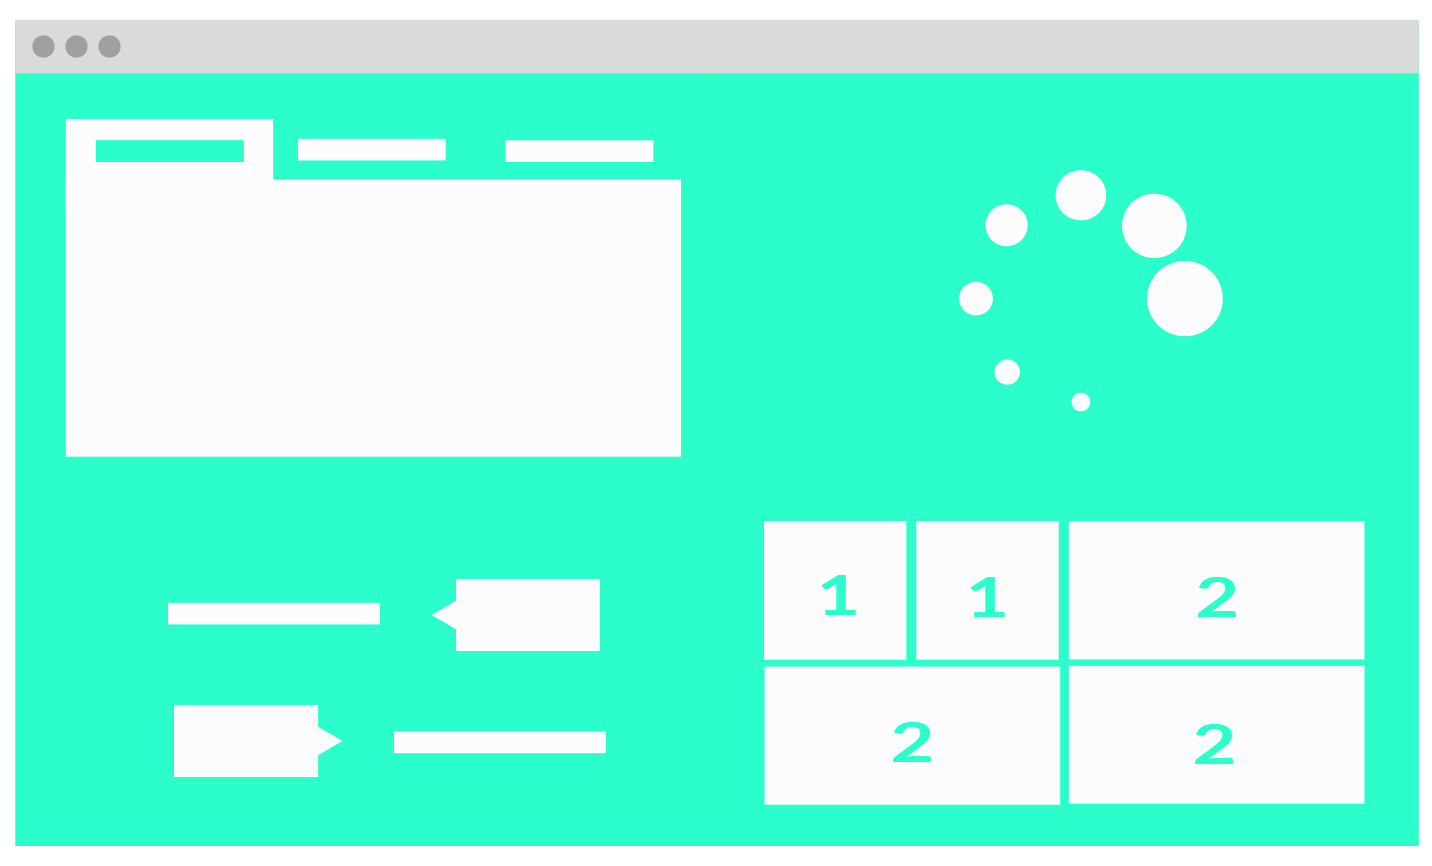 Component playground illustration